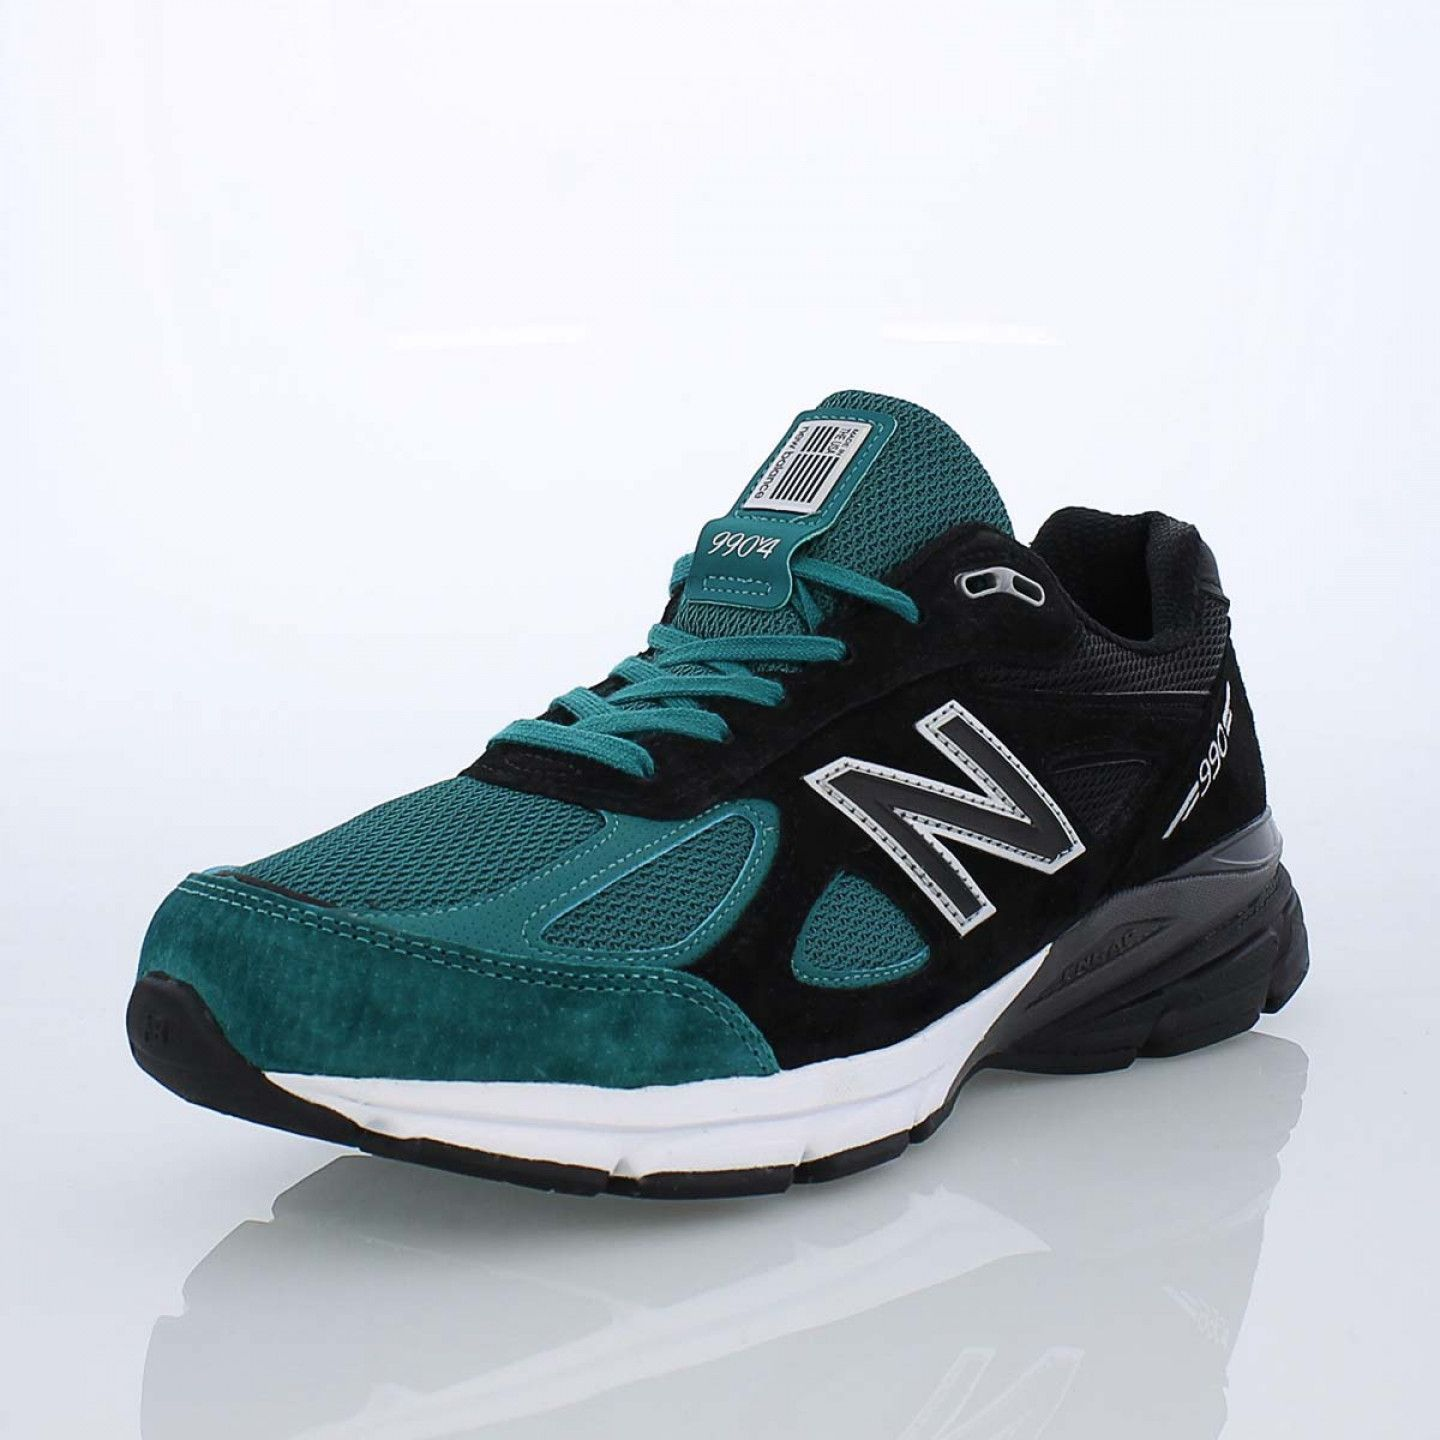 New Balance 990v4 Shoe City/YCMC.com Exclusive